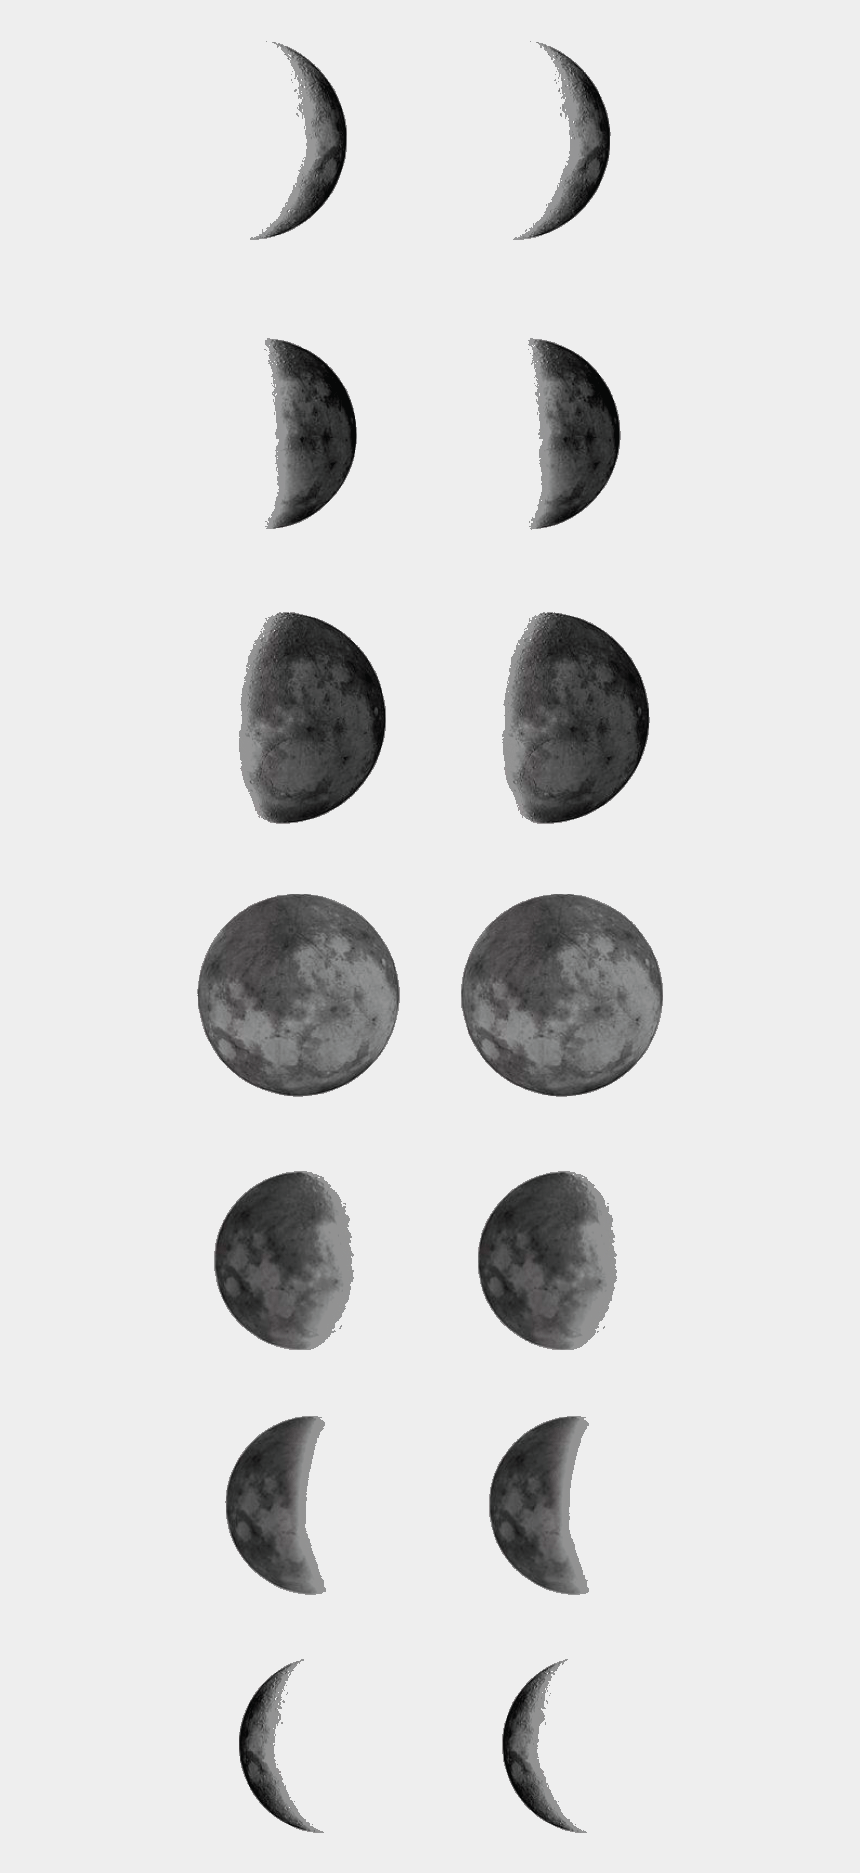 moon phases clipart, Cartoons - Moon Cycle Png - Moon Phases Tattoo